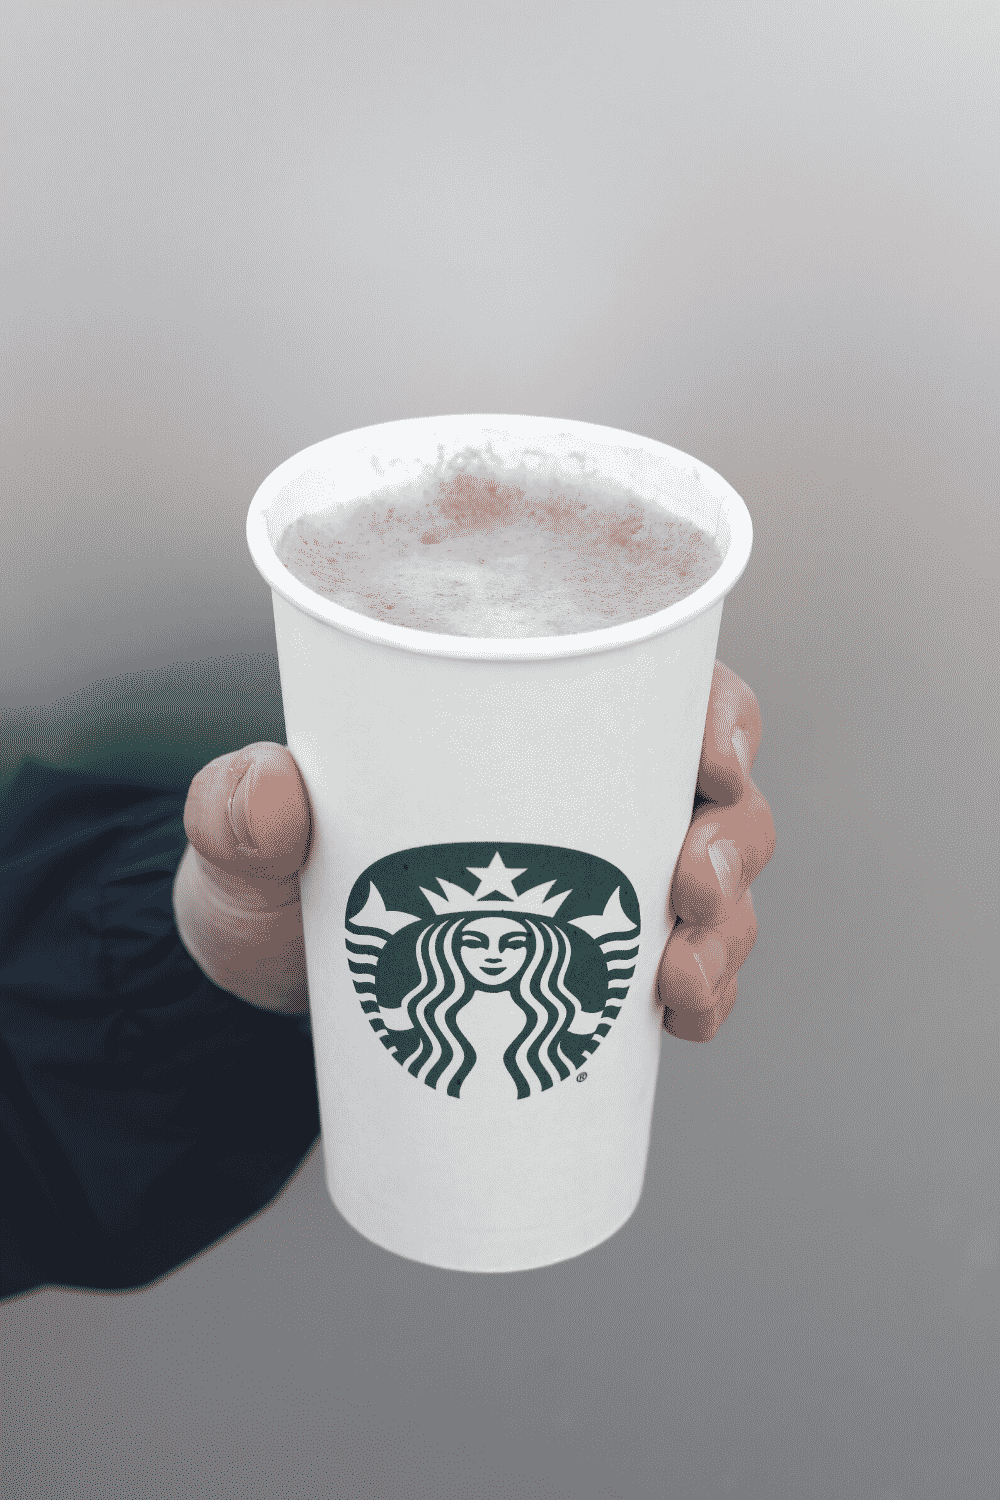 A hand holding a cup of Starbucks vegan hot chocolate.